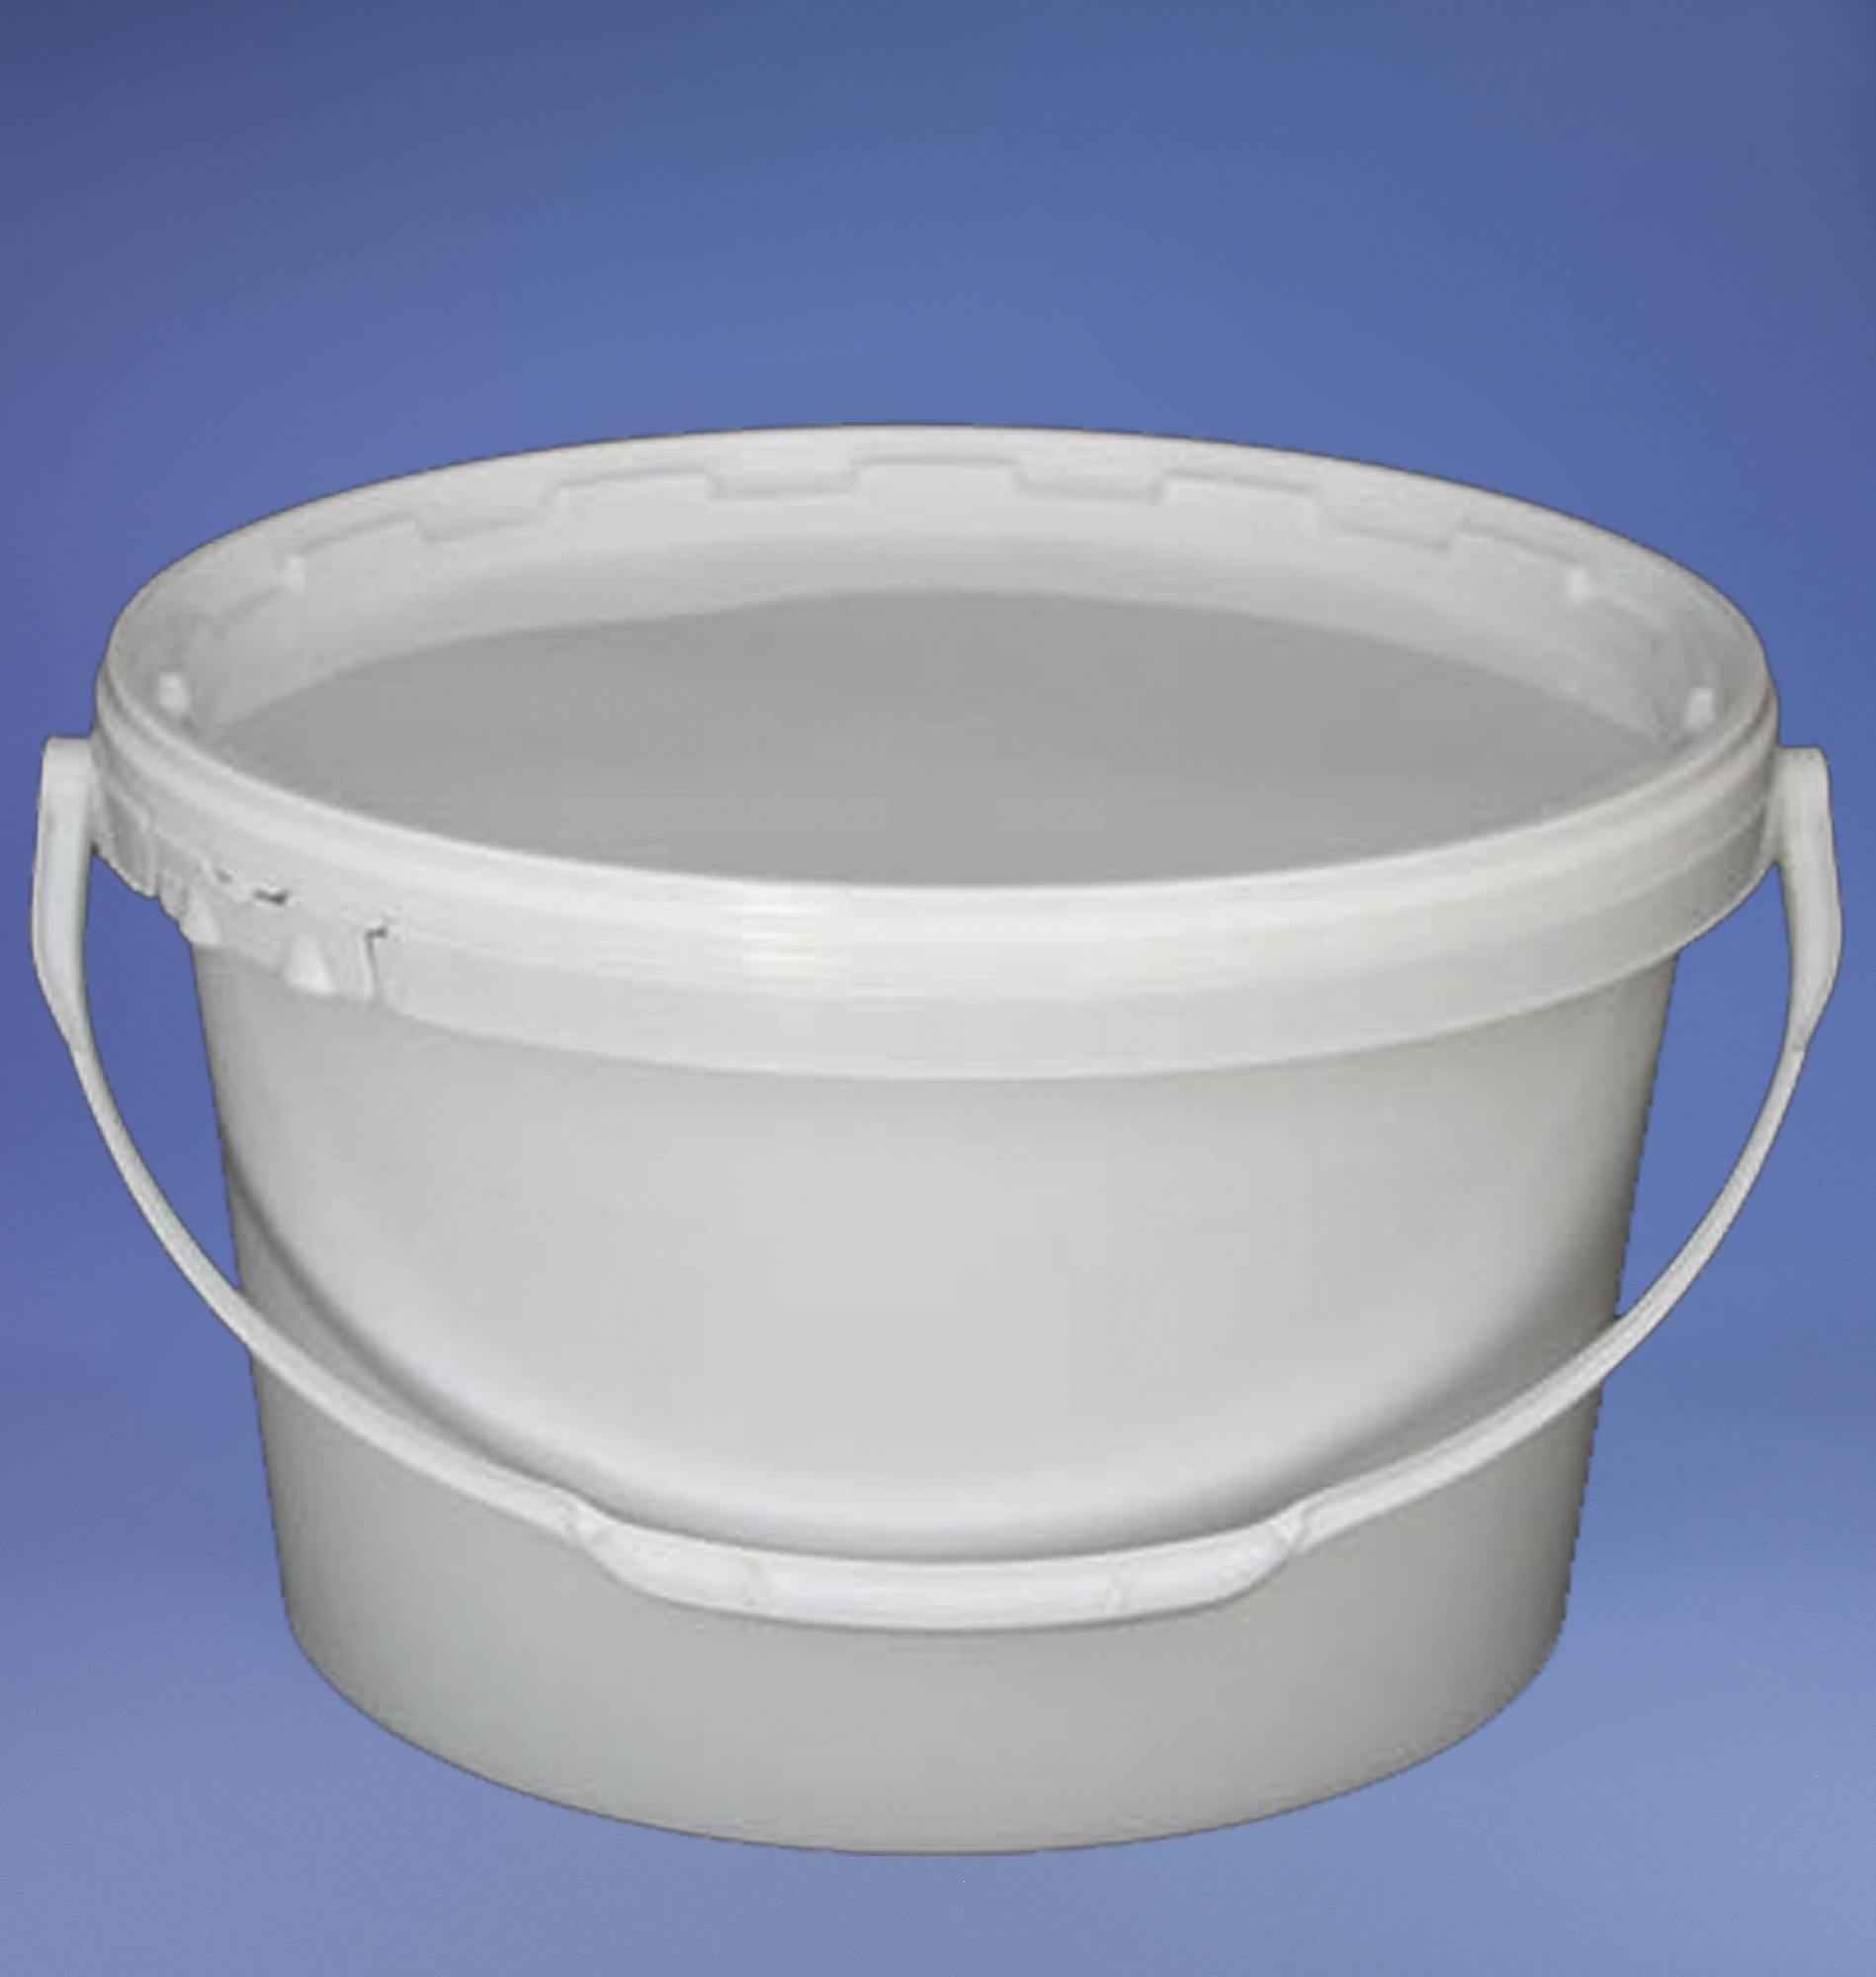 PB15OW Oval Bucket 16.4L